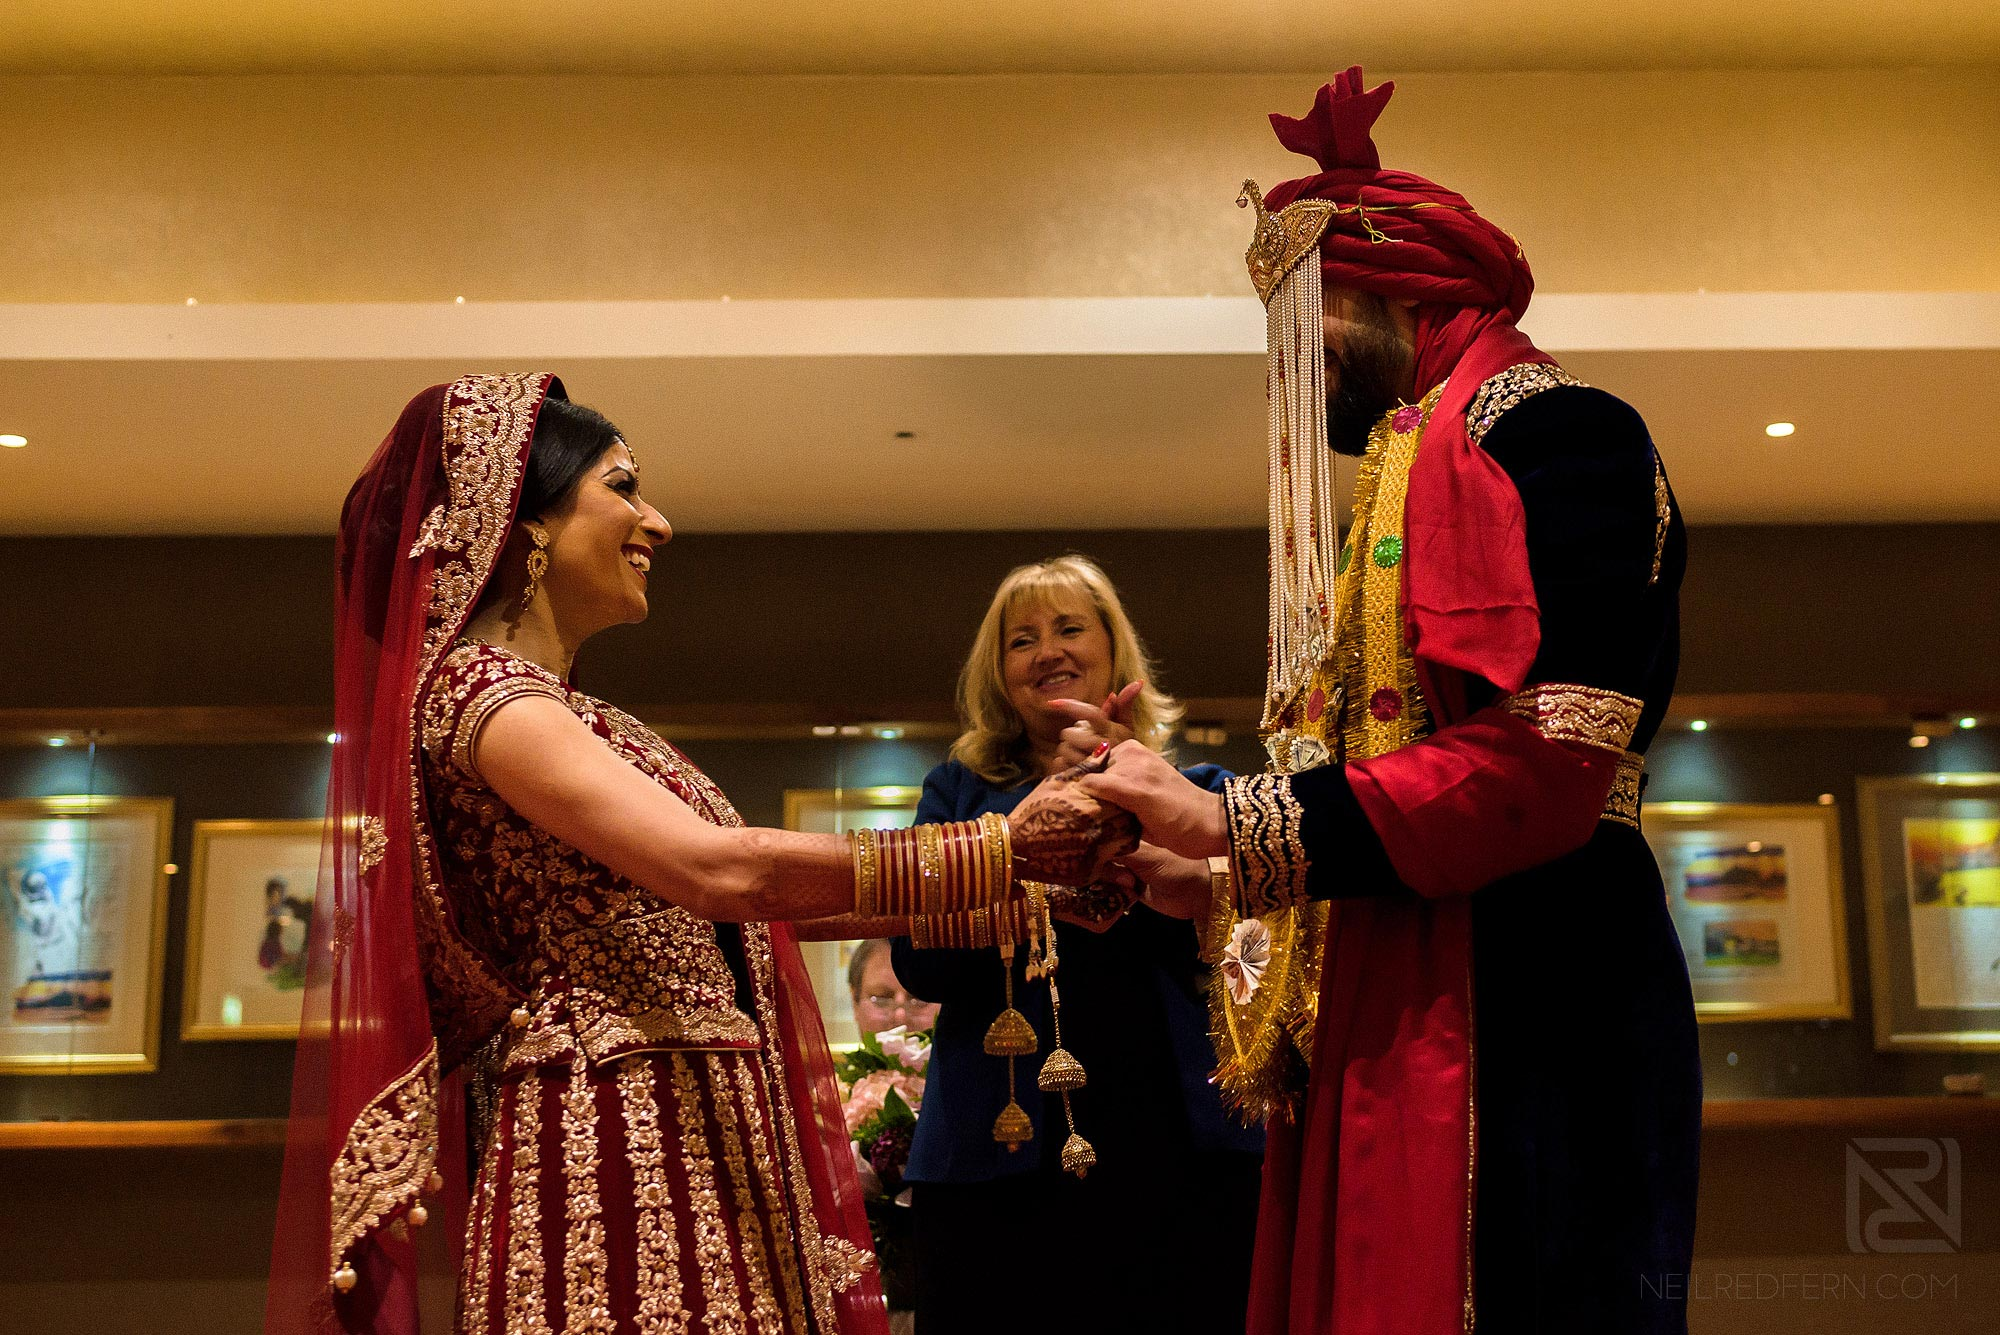 bride and groom smiling at each other during wedding ceremony